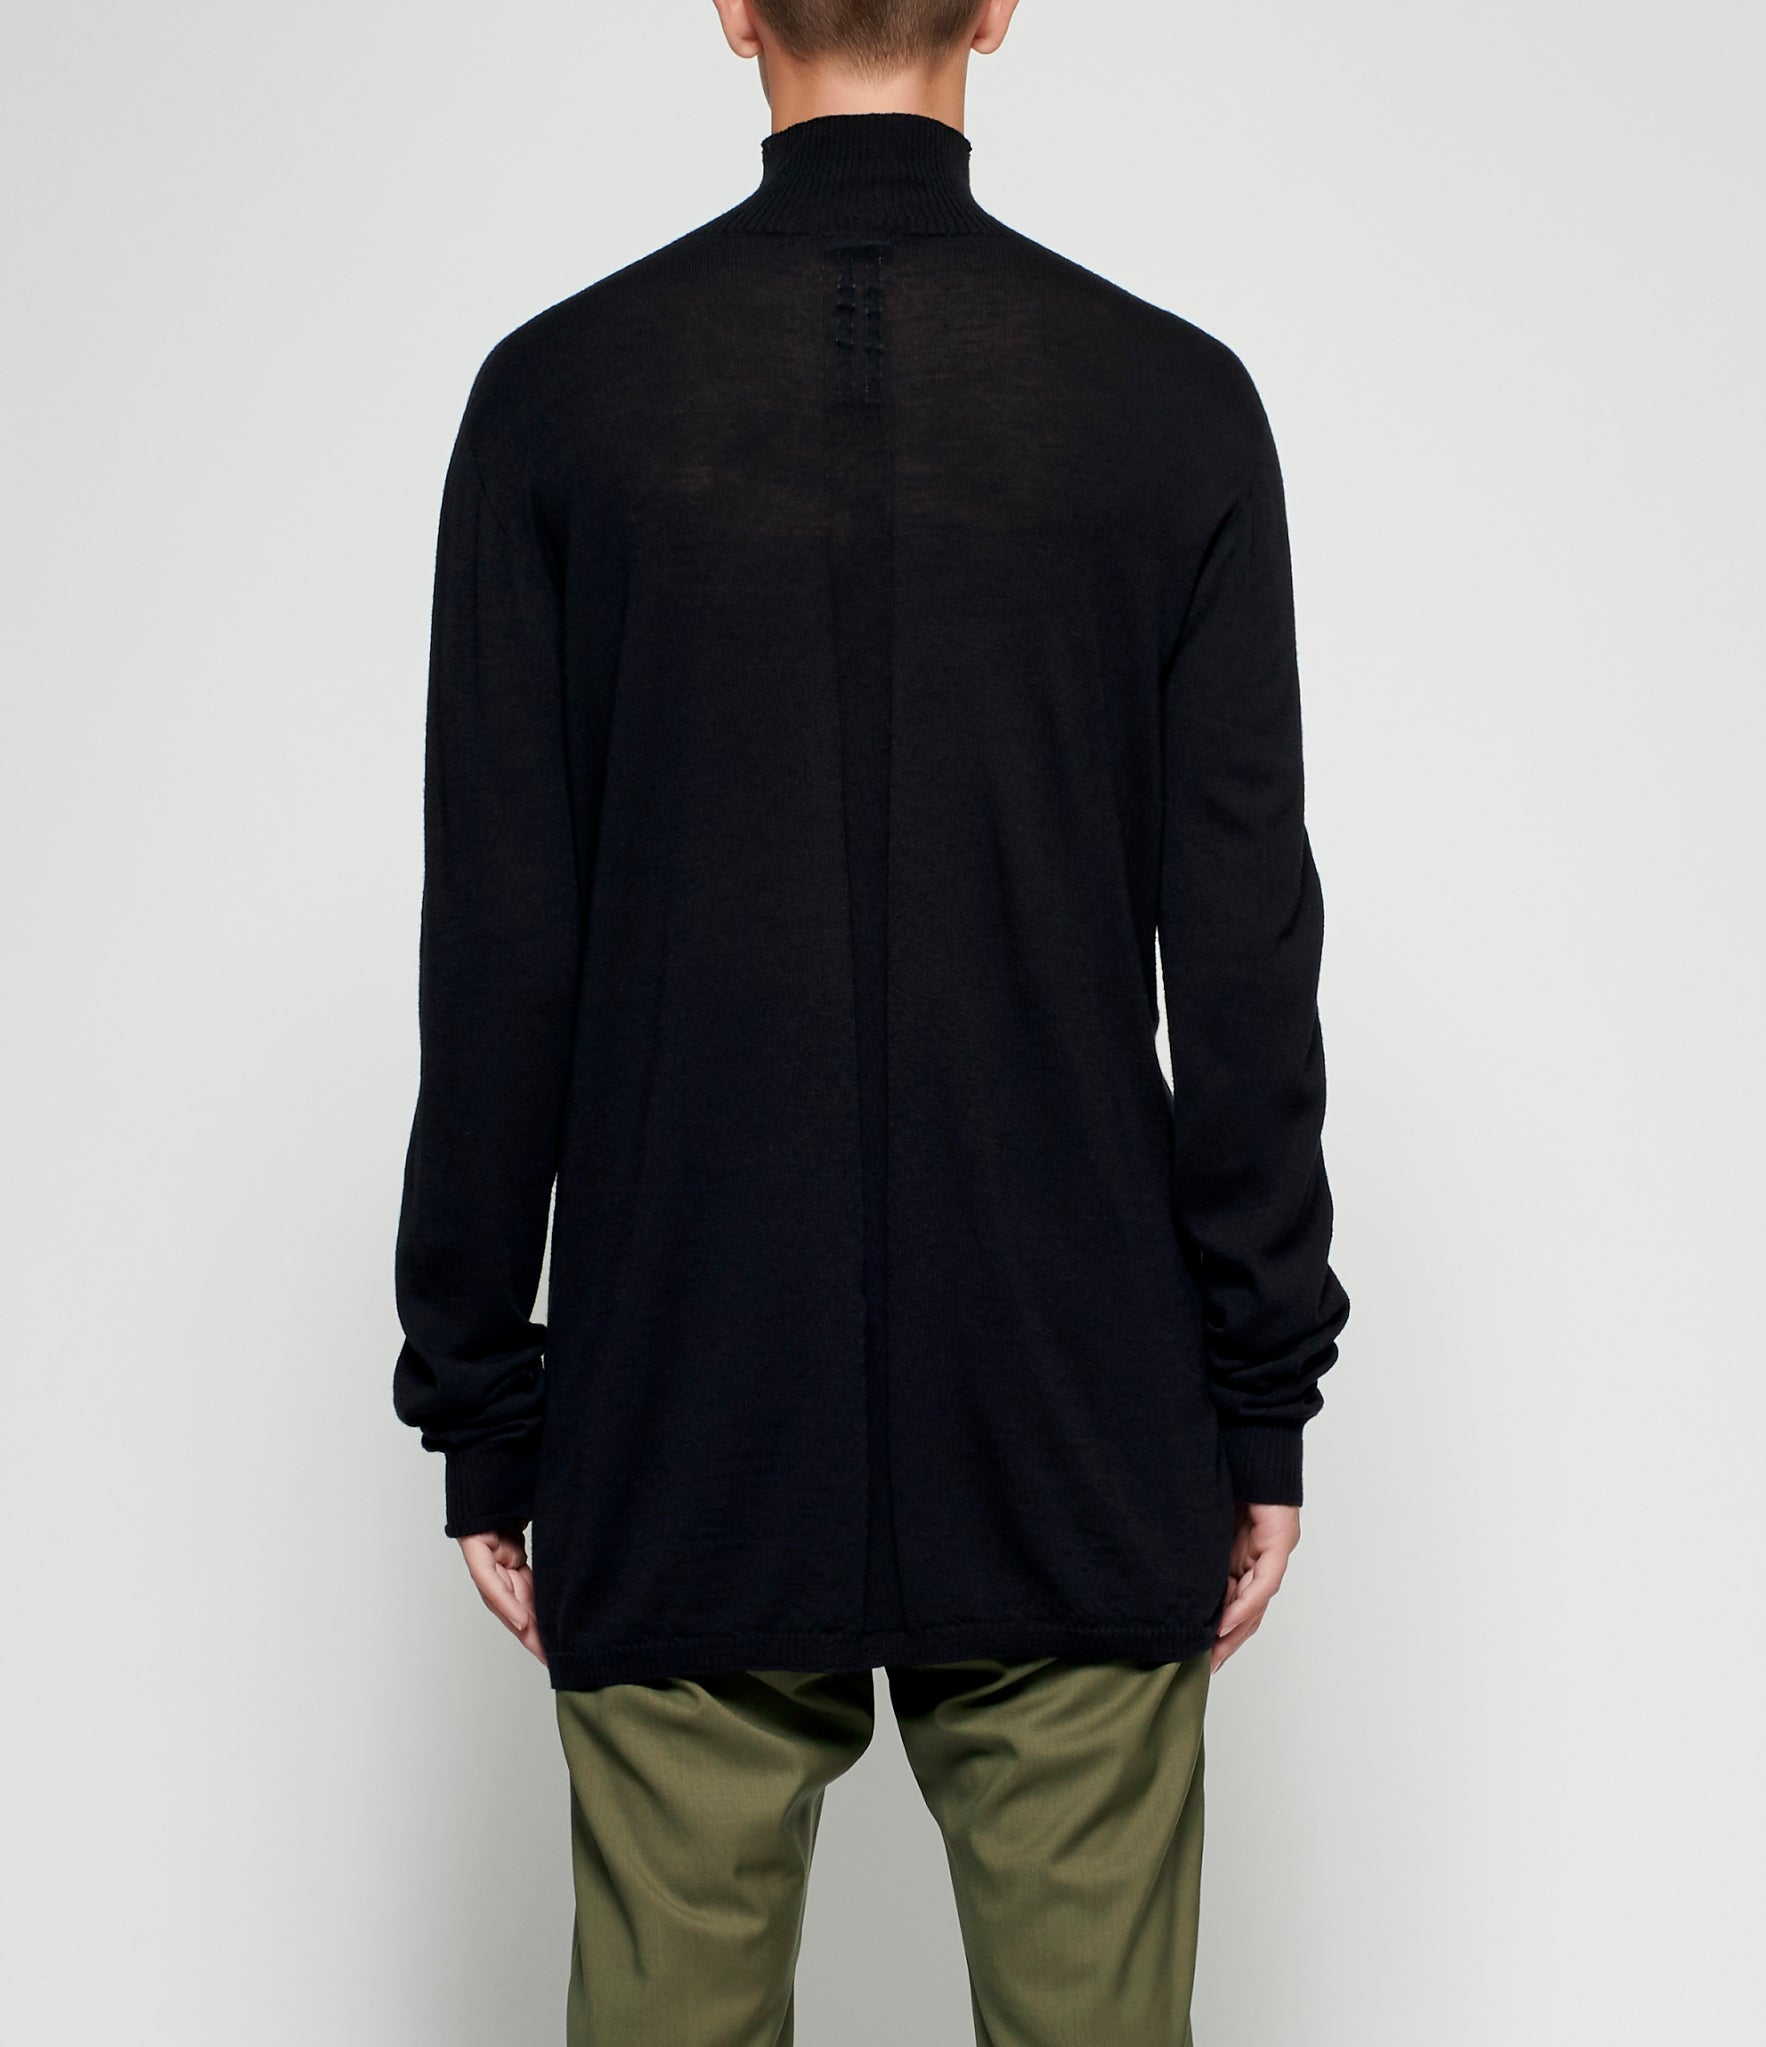 Rick Owens Oversized Turtleneck Sweater